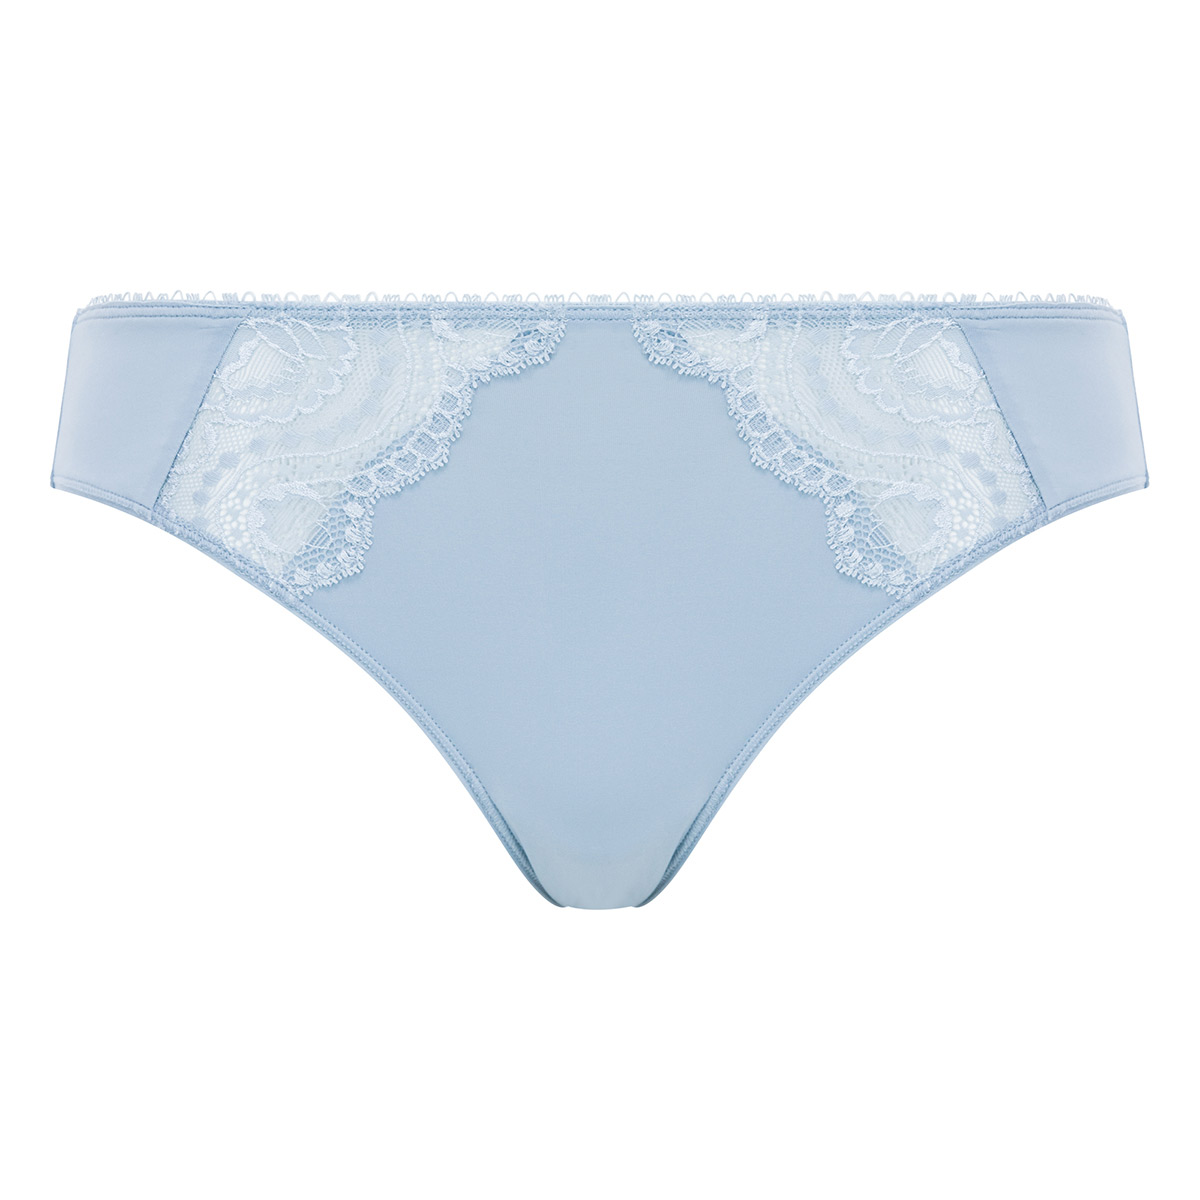 Bikini Knickers in Blue Fog Lace - Flower Elegance - PLAYTEX